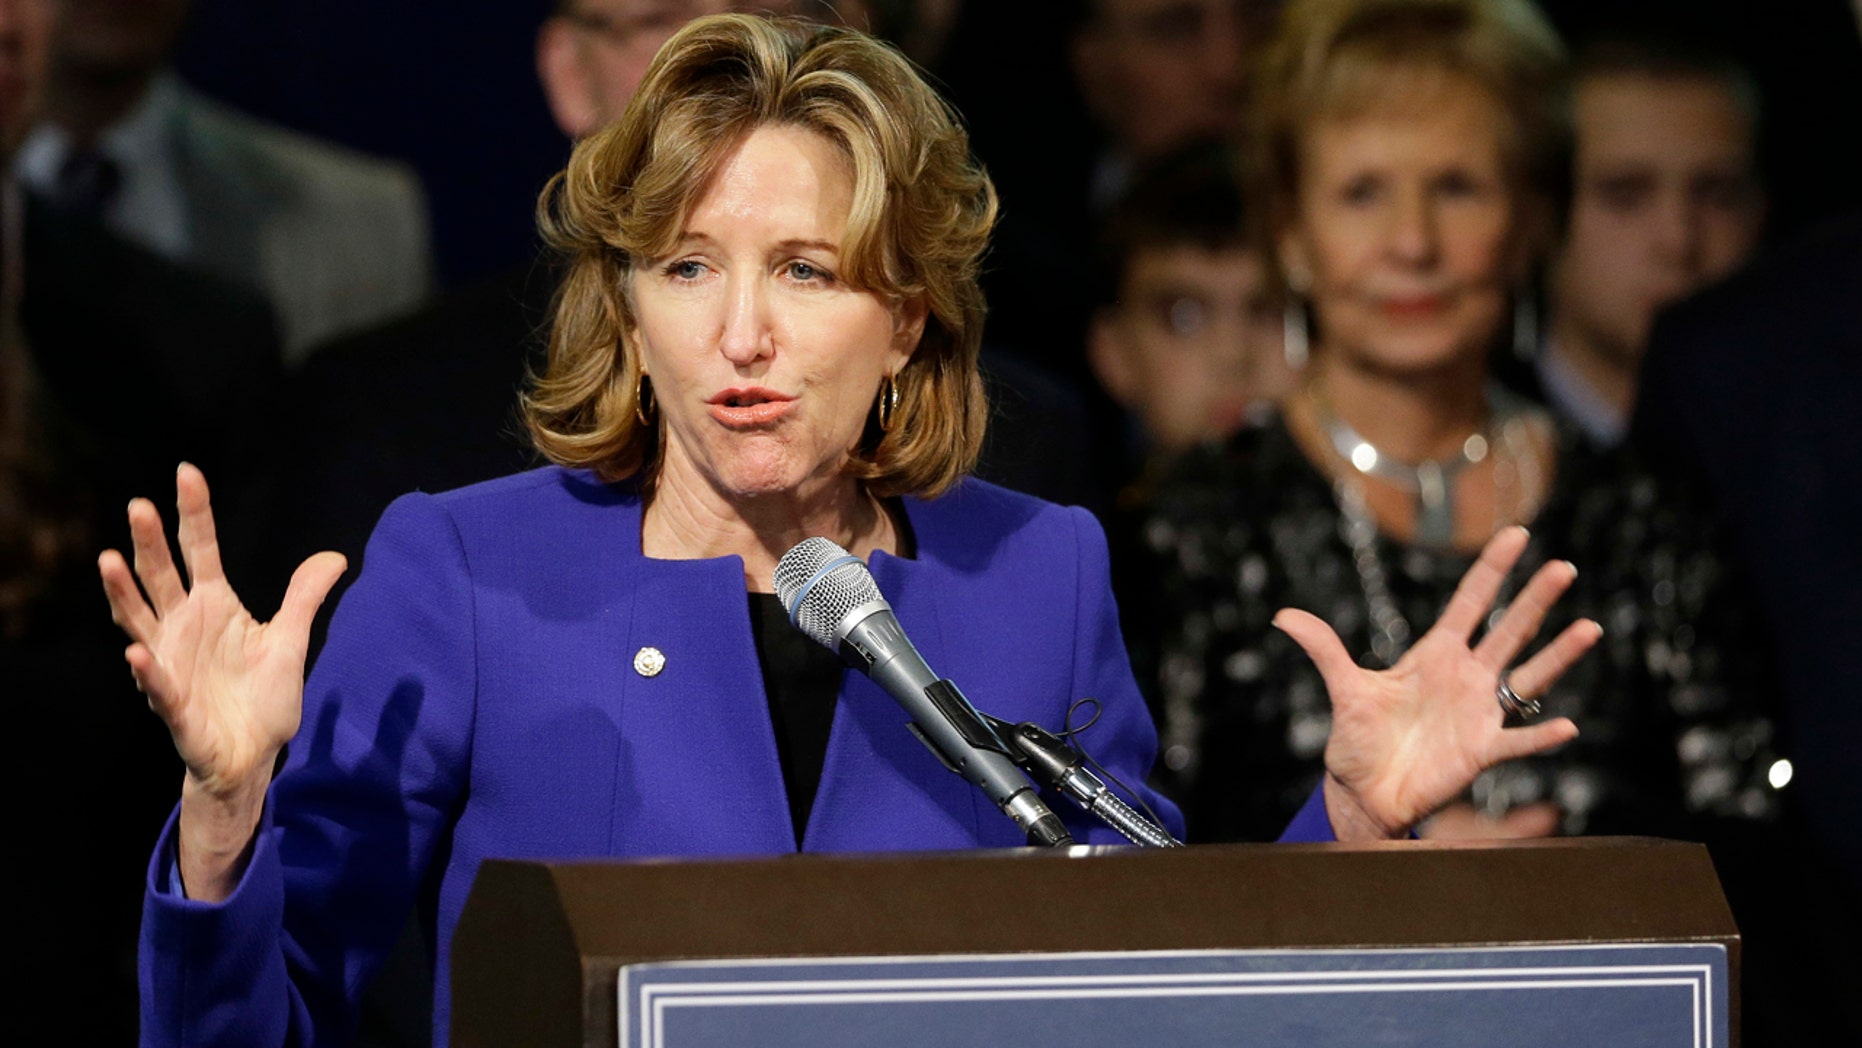 FILE - IN this Nov. 4, 2014 file photo, Sen. Kay Hagan, D-N.C., gives her concession speech during an election night rally in Greensboro, N.C. Hagan, has been hospitalized after falling seriously ill, according to Joe Ruthven, her brother.